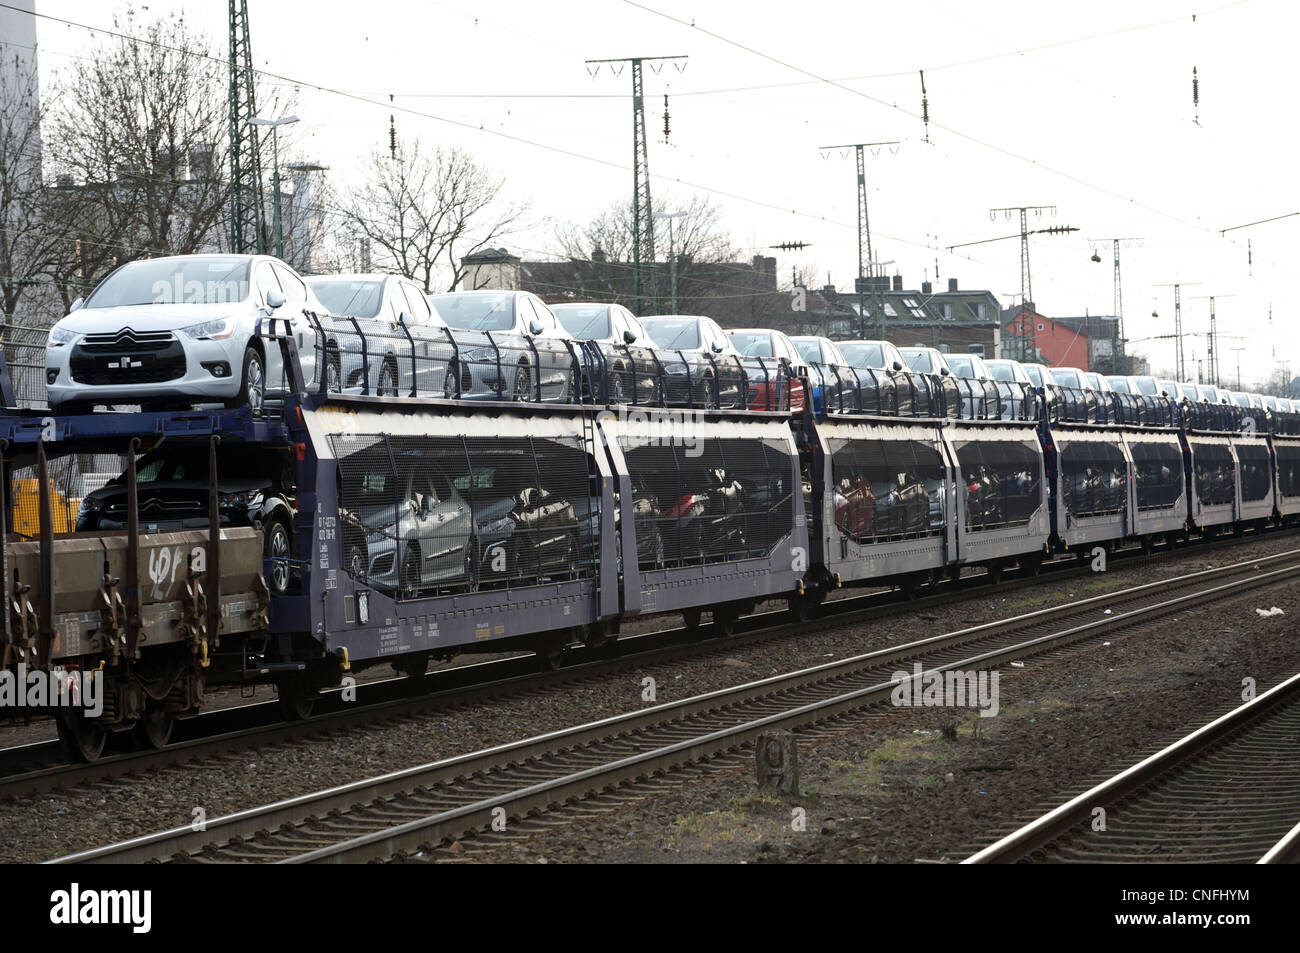 citroen cars being imported into germany by rail stock photo 47671896 alamy. Black Bedroom Furniture Sets. Home Design Ideas